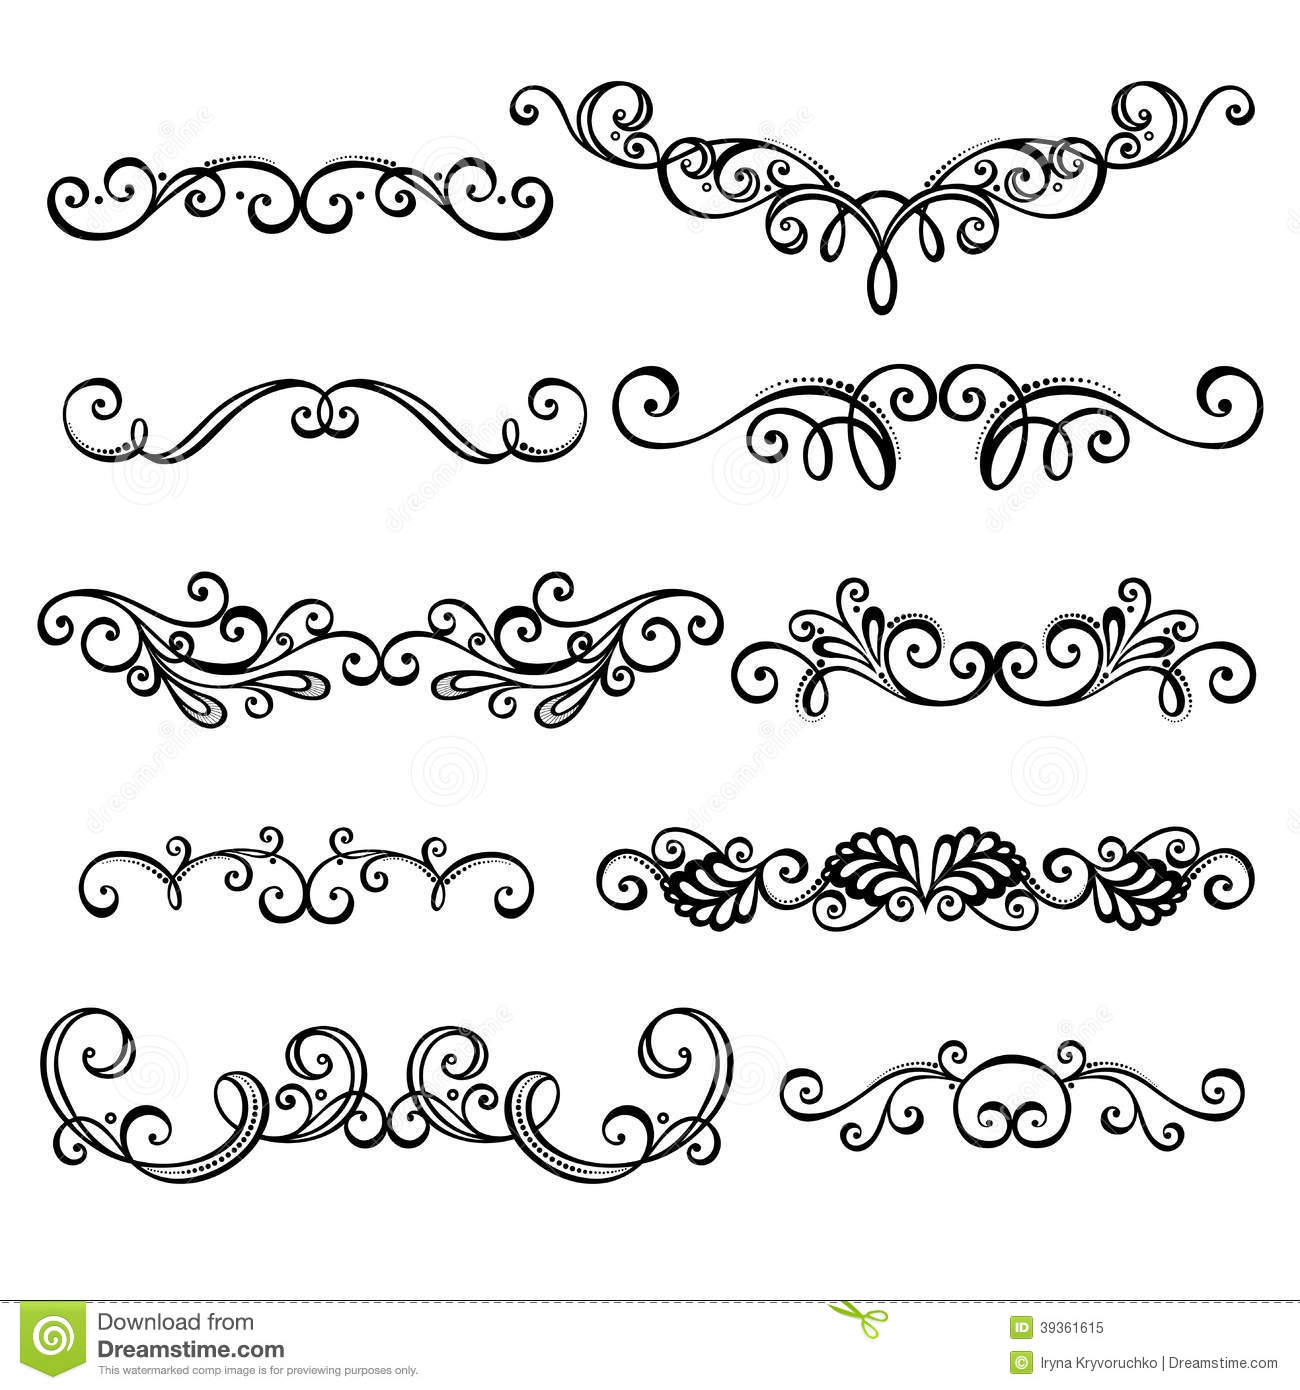 Stock Photos Grass Border Image12541743 additionally Free Border furthermore Royalty Free Stock Photo Calligraphic Borders Anctor D Page Decoration Vector Set Image39361615 furthermore Borders Frames Vectors likewise Resource 840911. on art deco page border